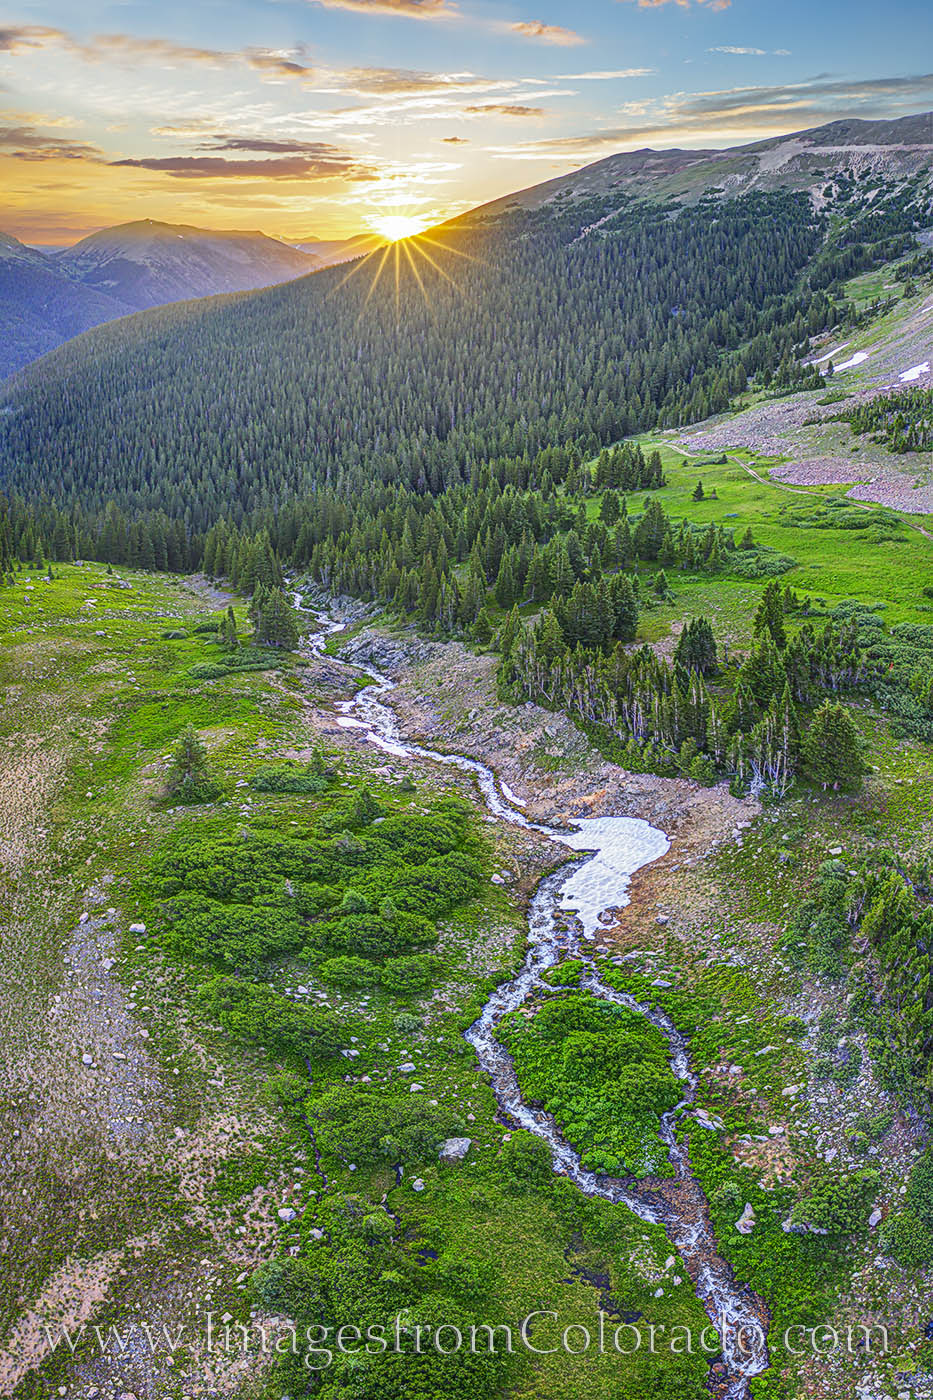 butler gulch, drone, sunrise, morning, clear creek county, grand county, hike, exploring, photo